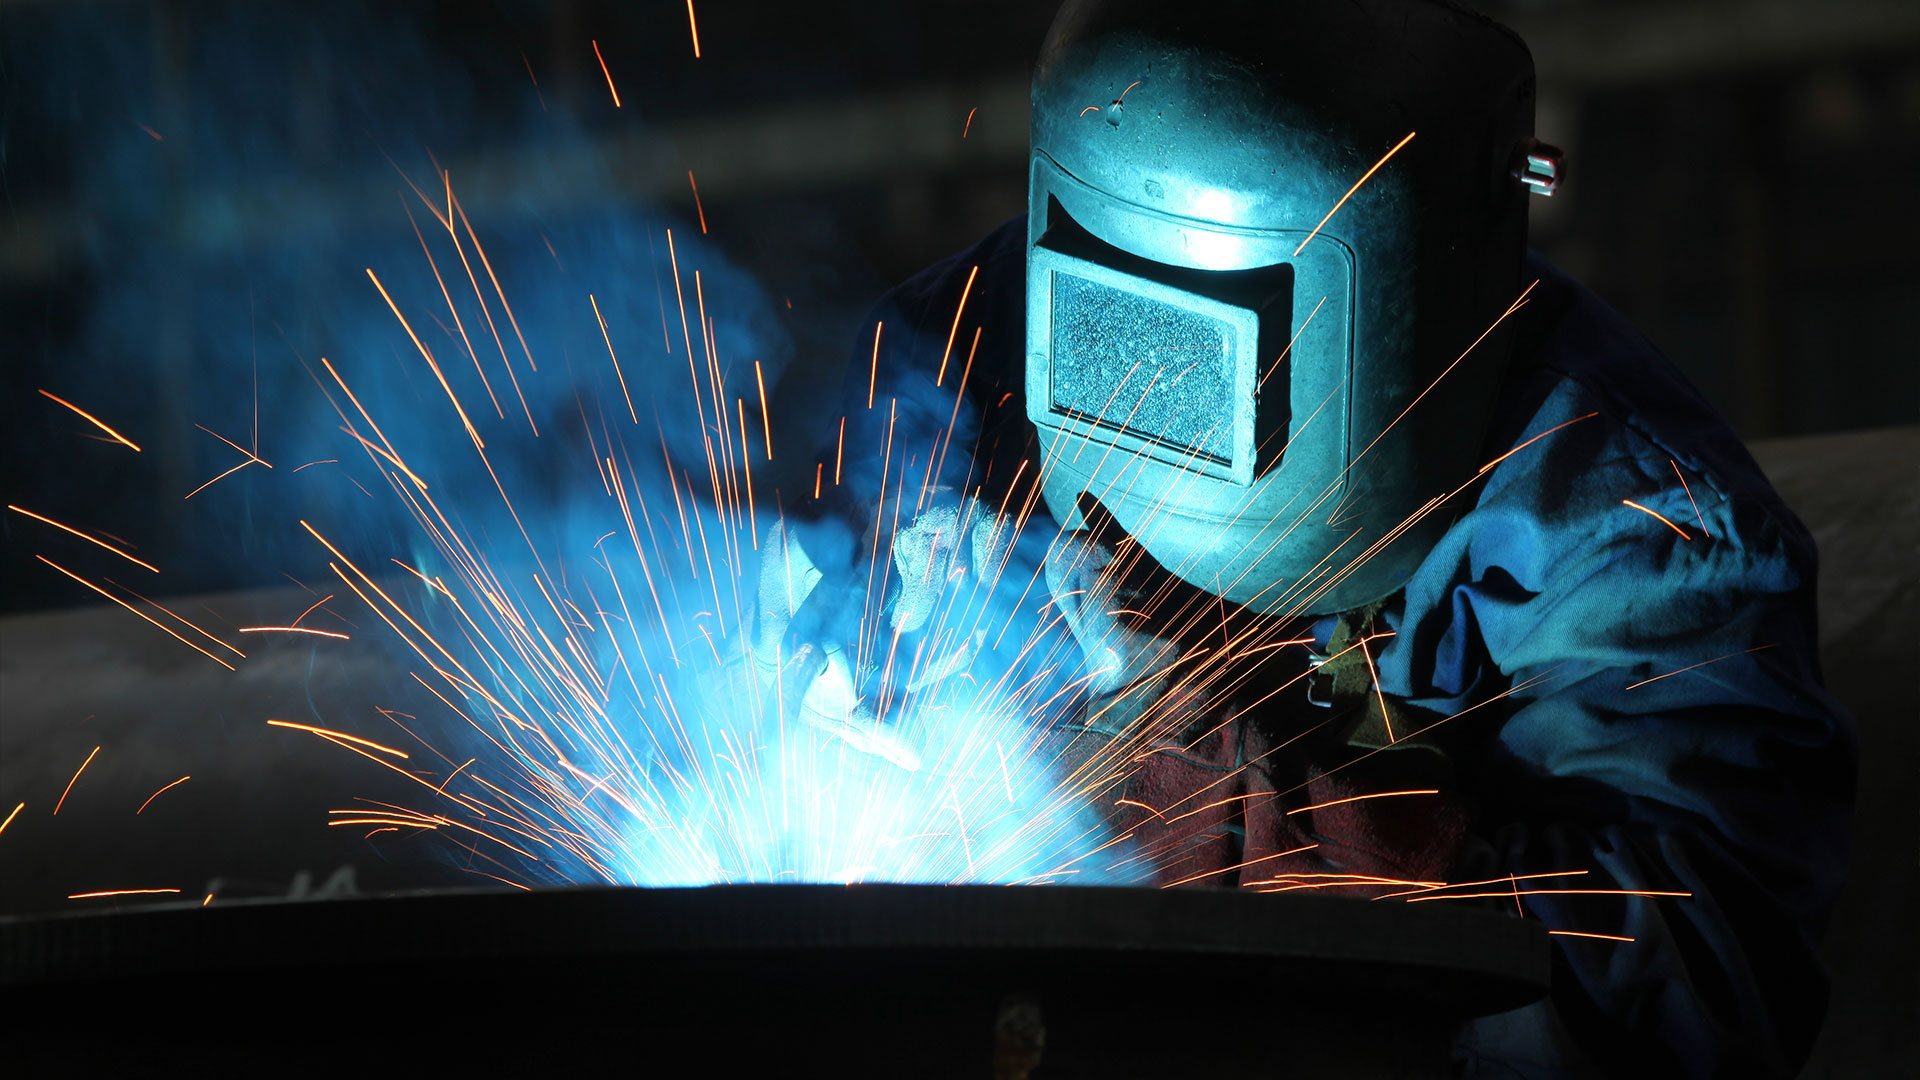 Richmond Mobile Welding, Welding Shop and Metal Fabrication